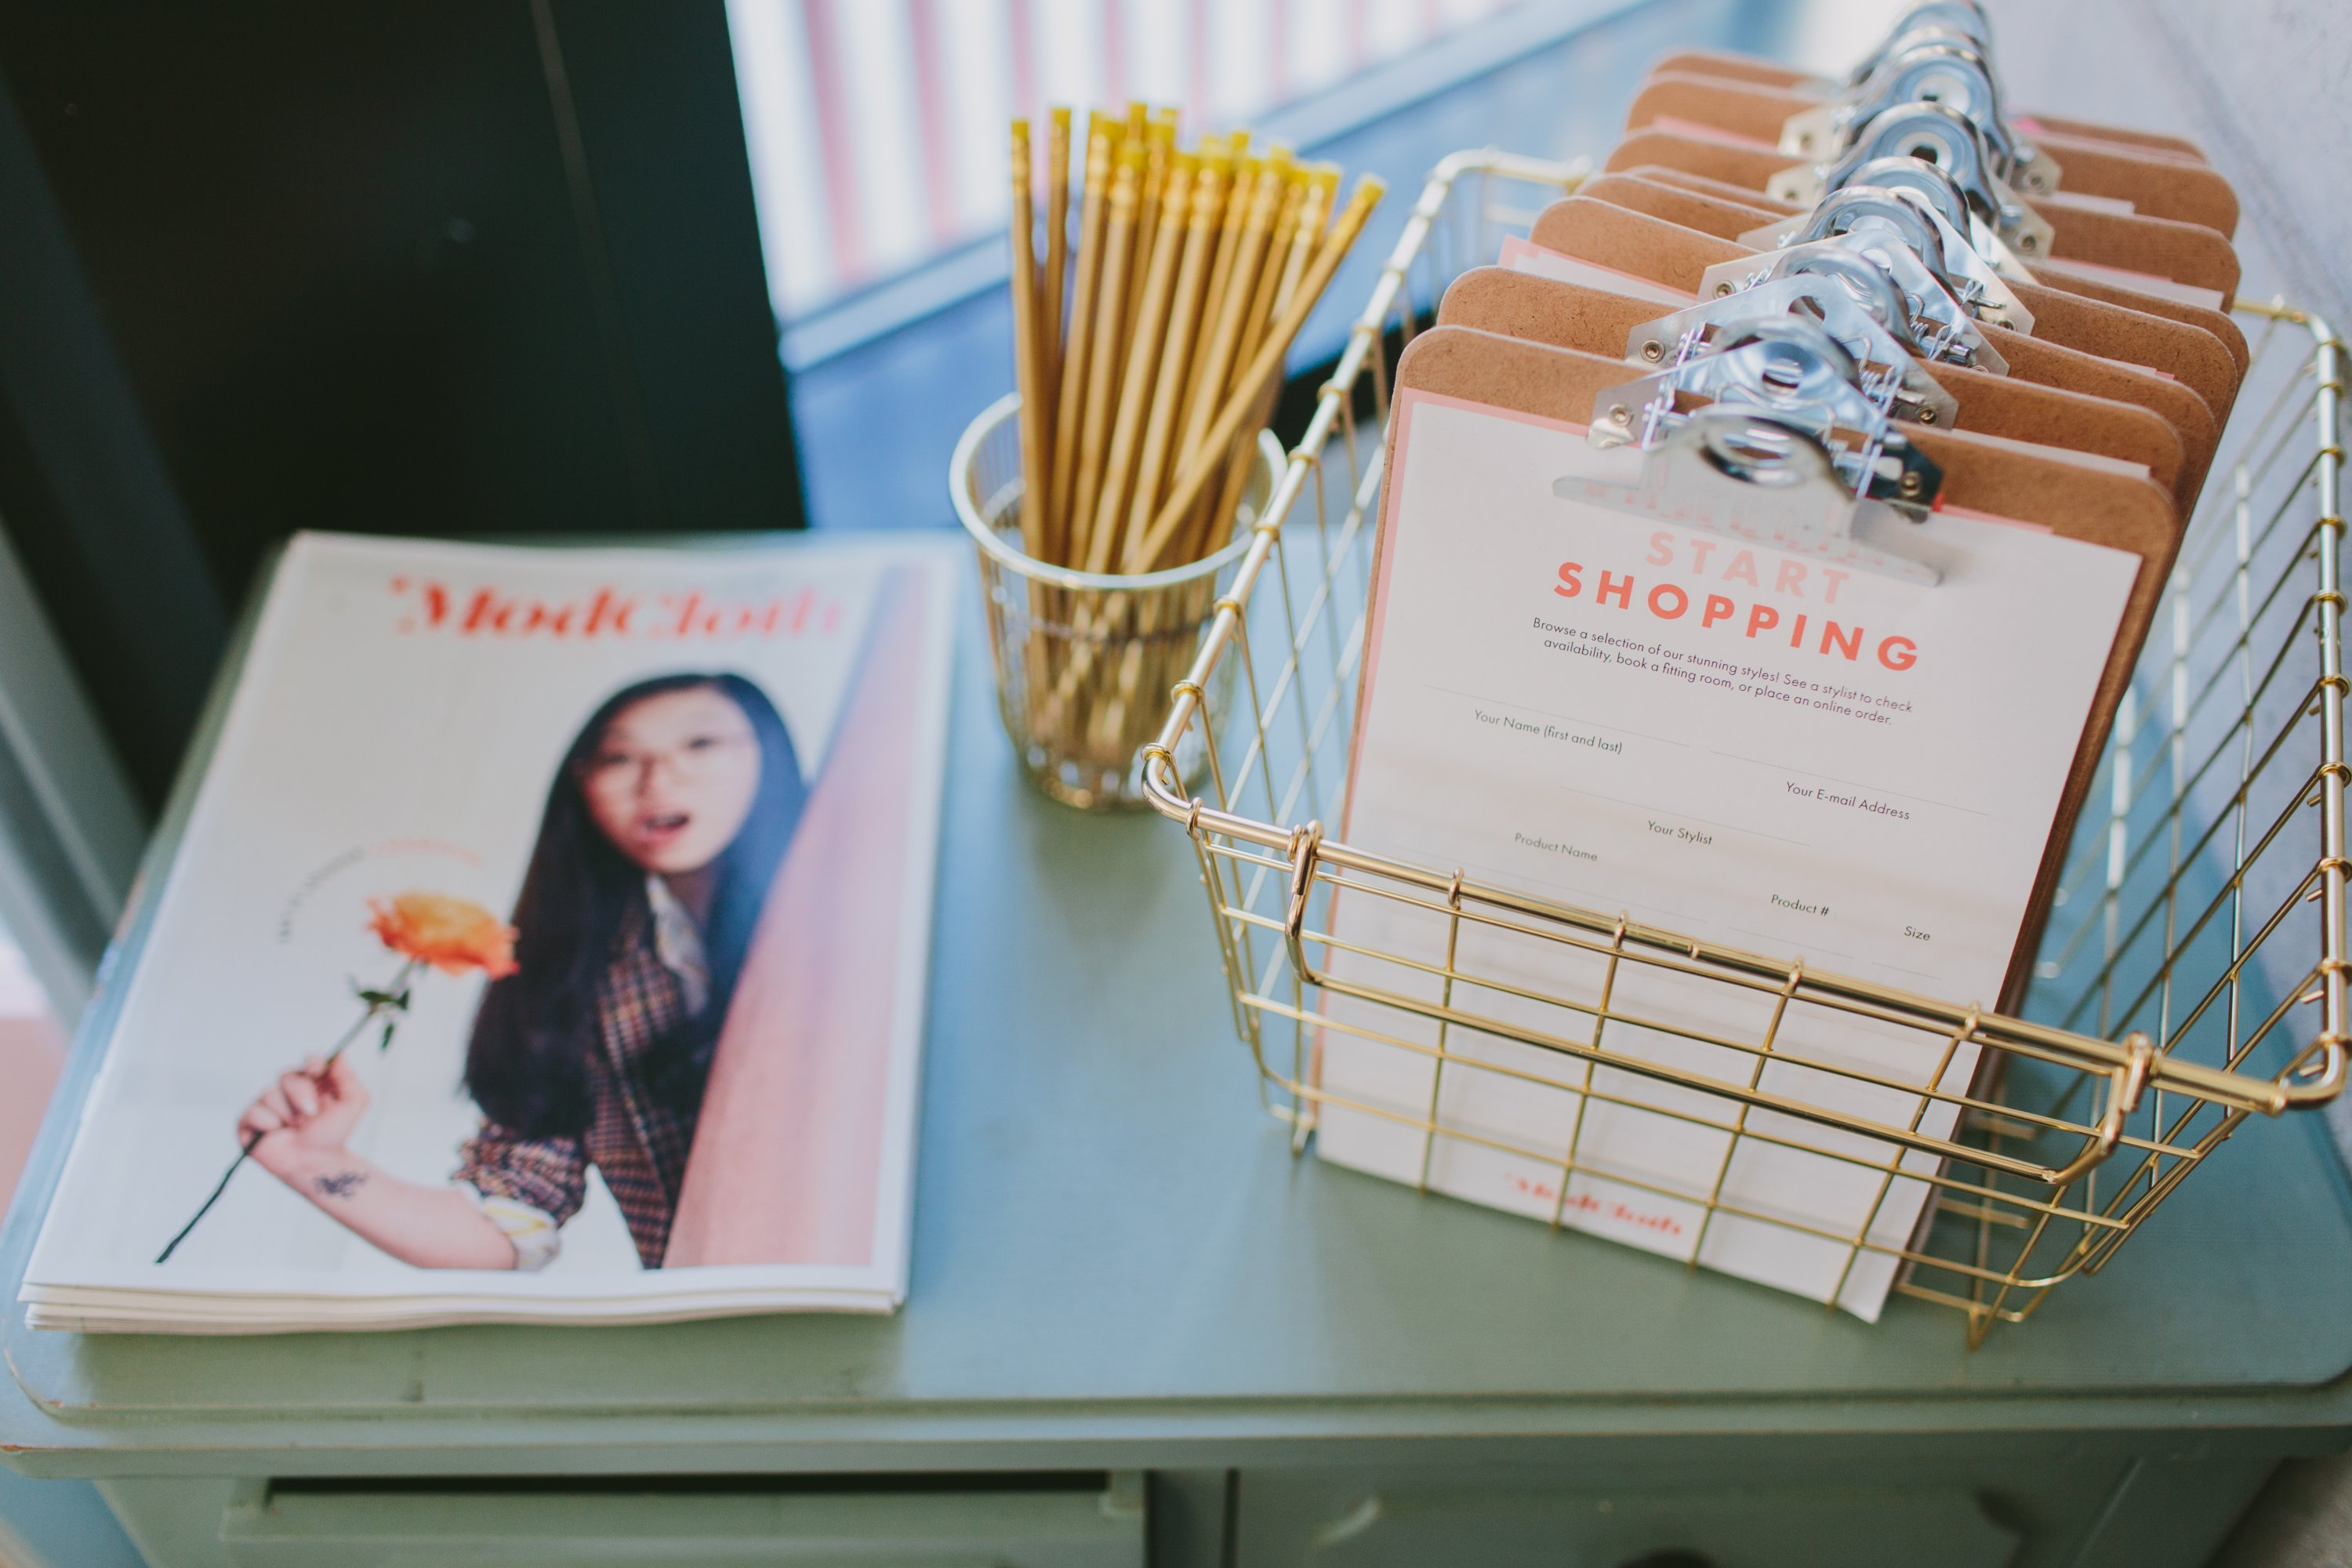 Shoppers will compile lists of clothes to try on and order using these clipboards. Photograph by Tori Watson Photography, courtesy of ModCloth.